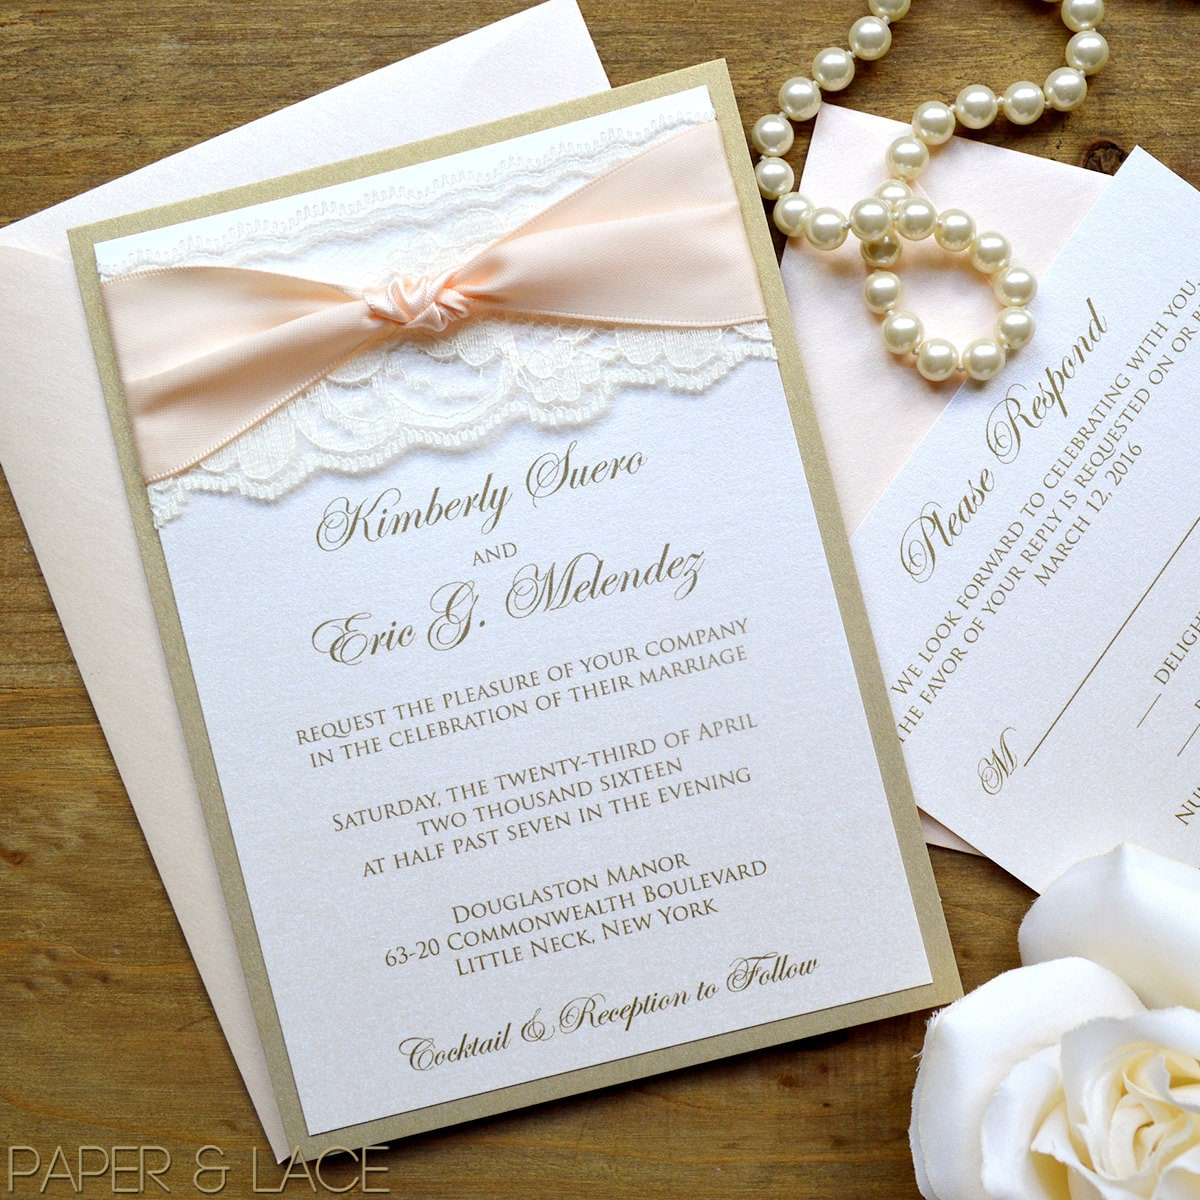 THE KNOT - Blush and Gold Wedding Invitation - Classic Lace Wedding ...